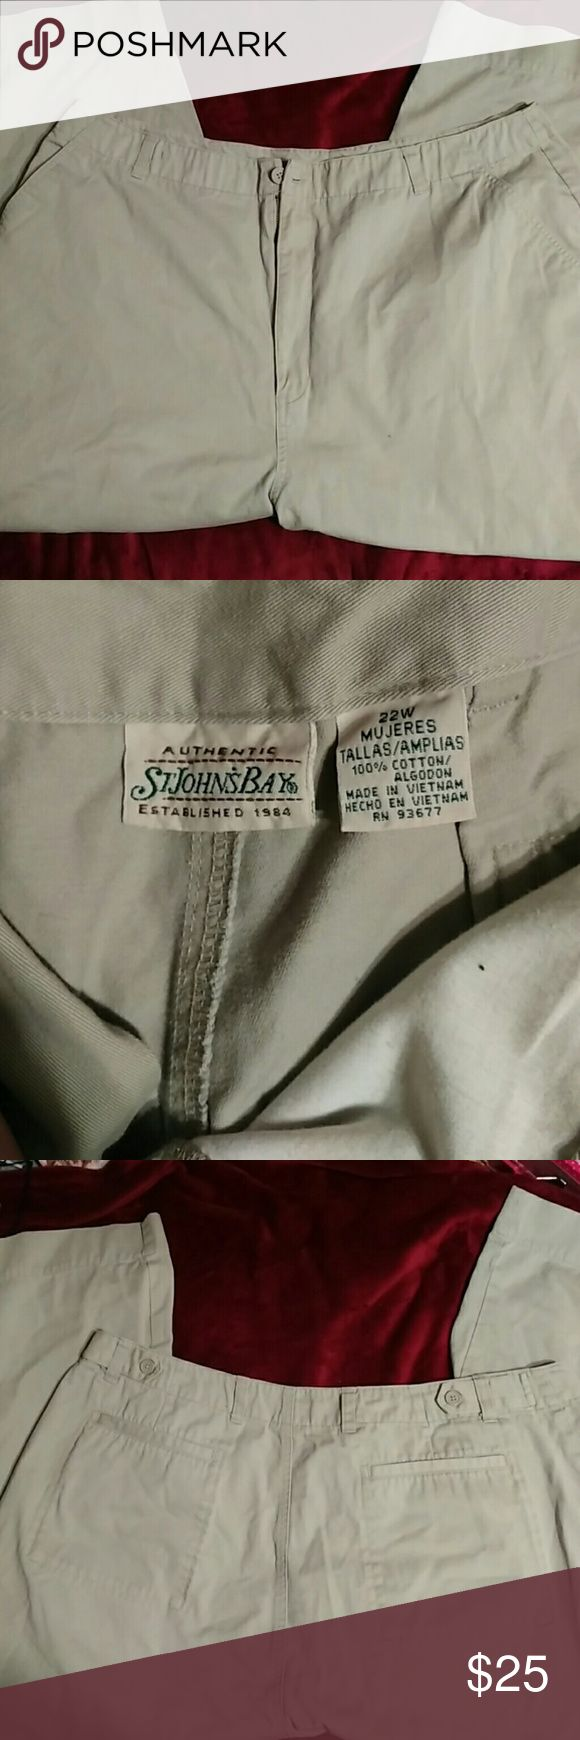 Plus size st johns bay 24 w khaki capri pants Great condition I'm not sure if these even been warn  no piling in between legs no rips no tares washed YES but its very clean new thick material these are wide leg i believe like a Capri style  these are perfect khaki tan Color please look at measurements below   Waist measurements 20 inches flat  Inseam crotch to hem 24 inches   St.johns bay size 24W St. John's Bay Jeans Ankle & Cropped